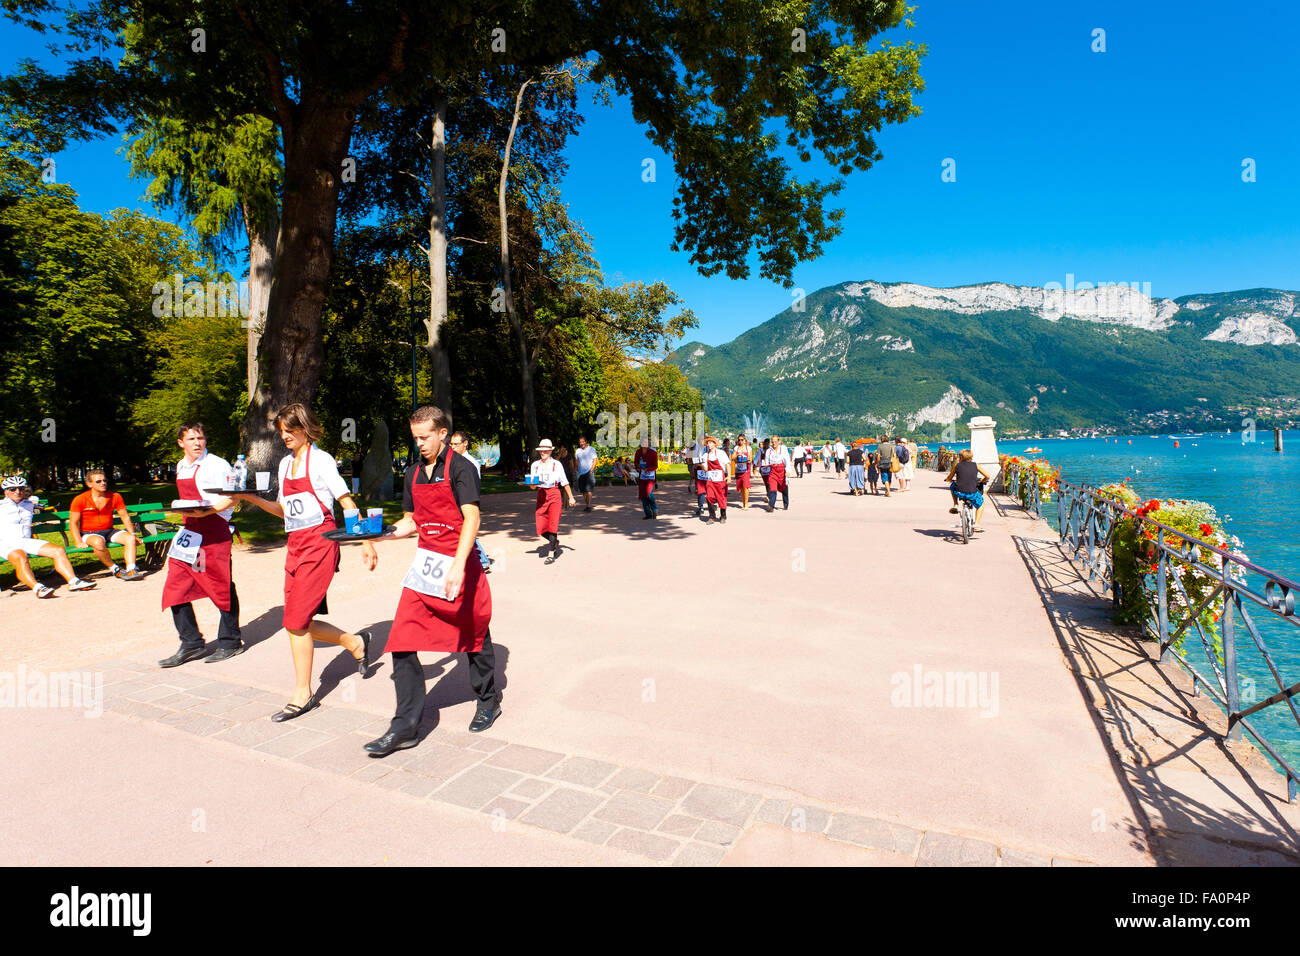 Many waiters wearing red aprons running with loaded trays around Annecy Lake at the French Alps during the Waiter's - Stock Image